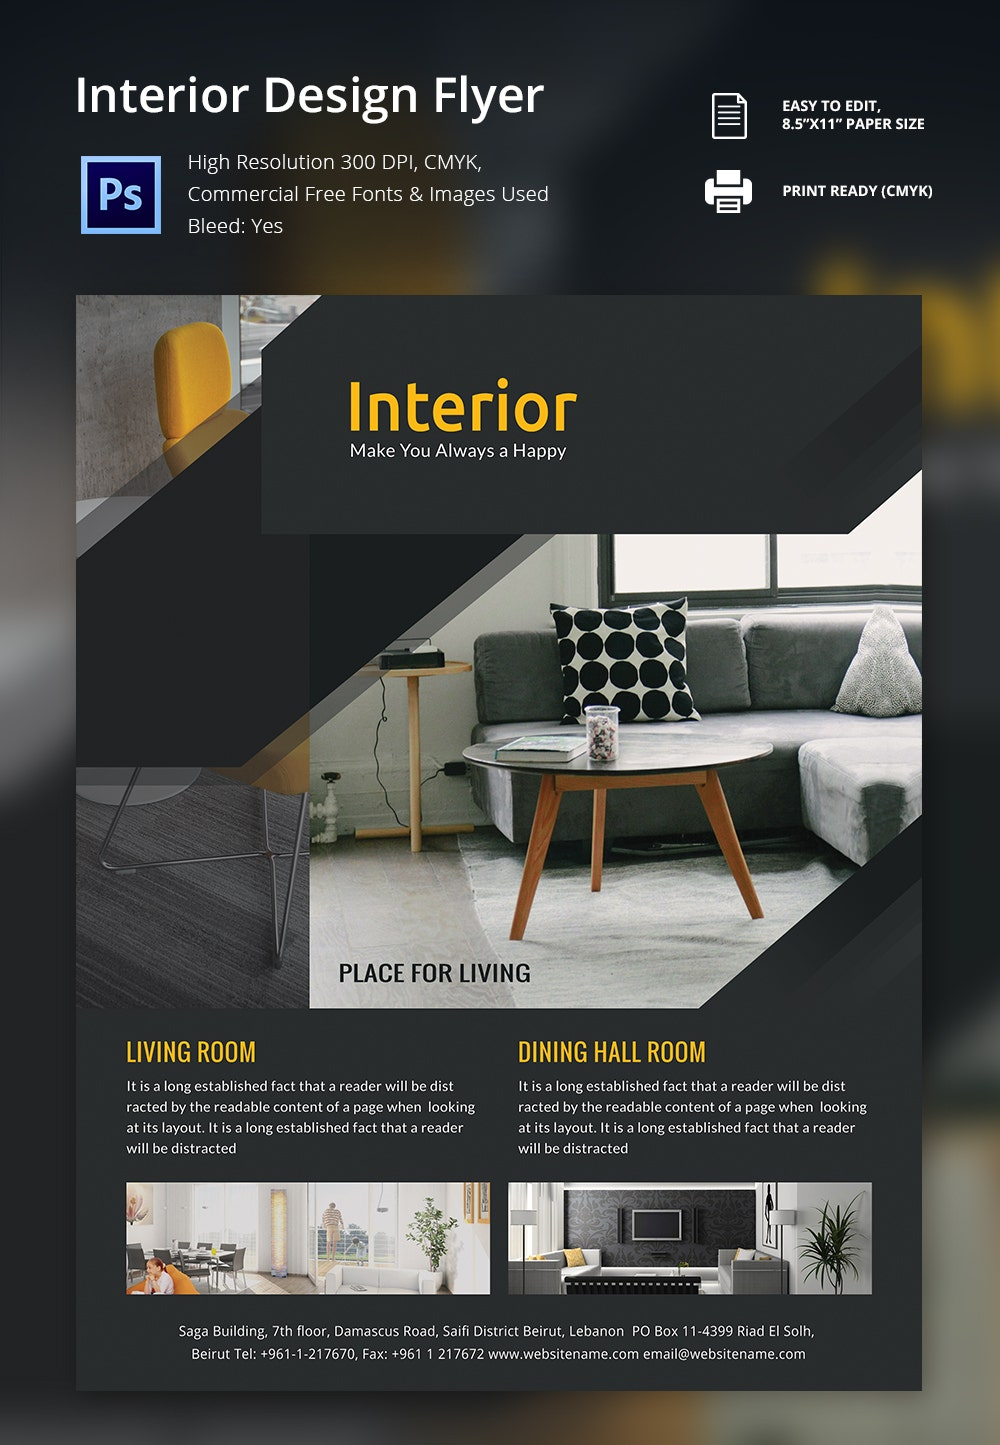 Interior design flyer template 25 free psd ai vector for Interior design planning software free